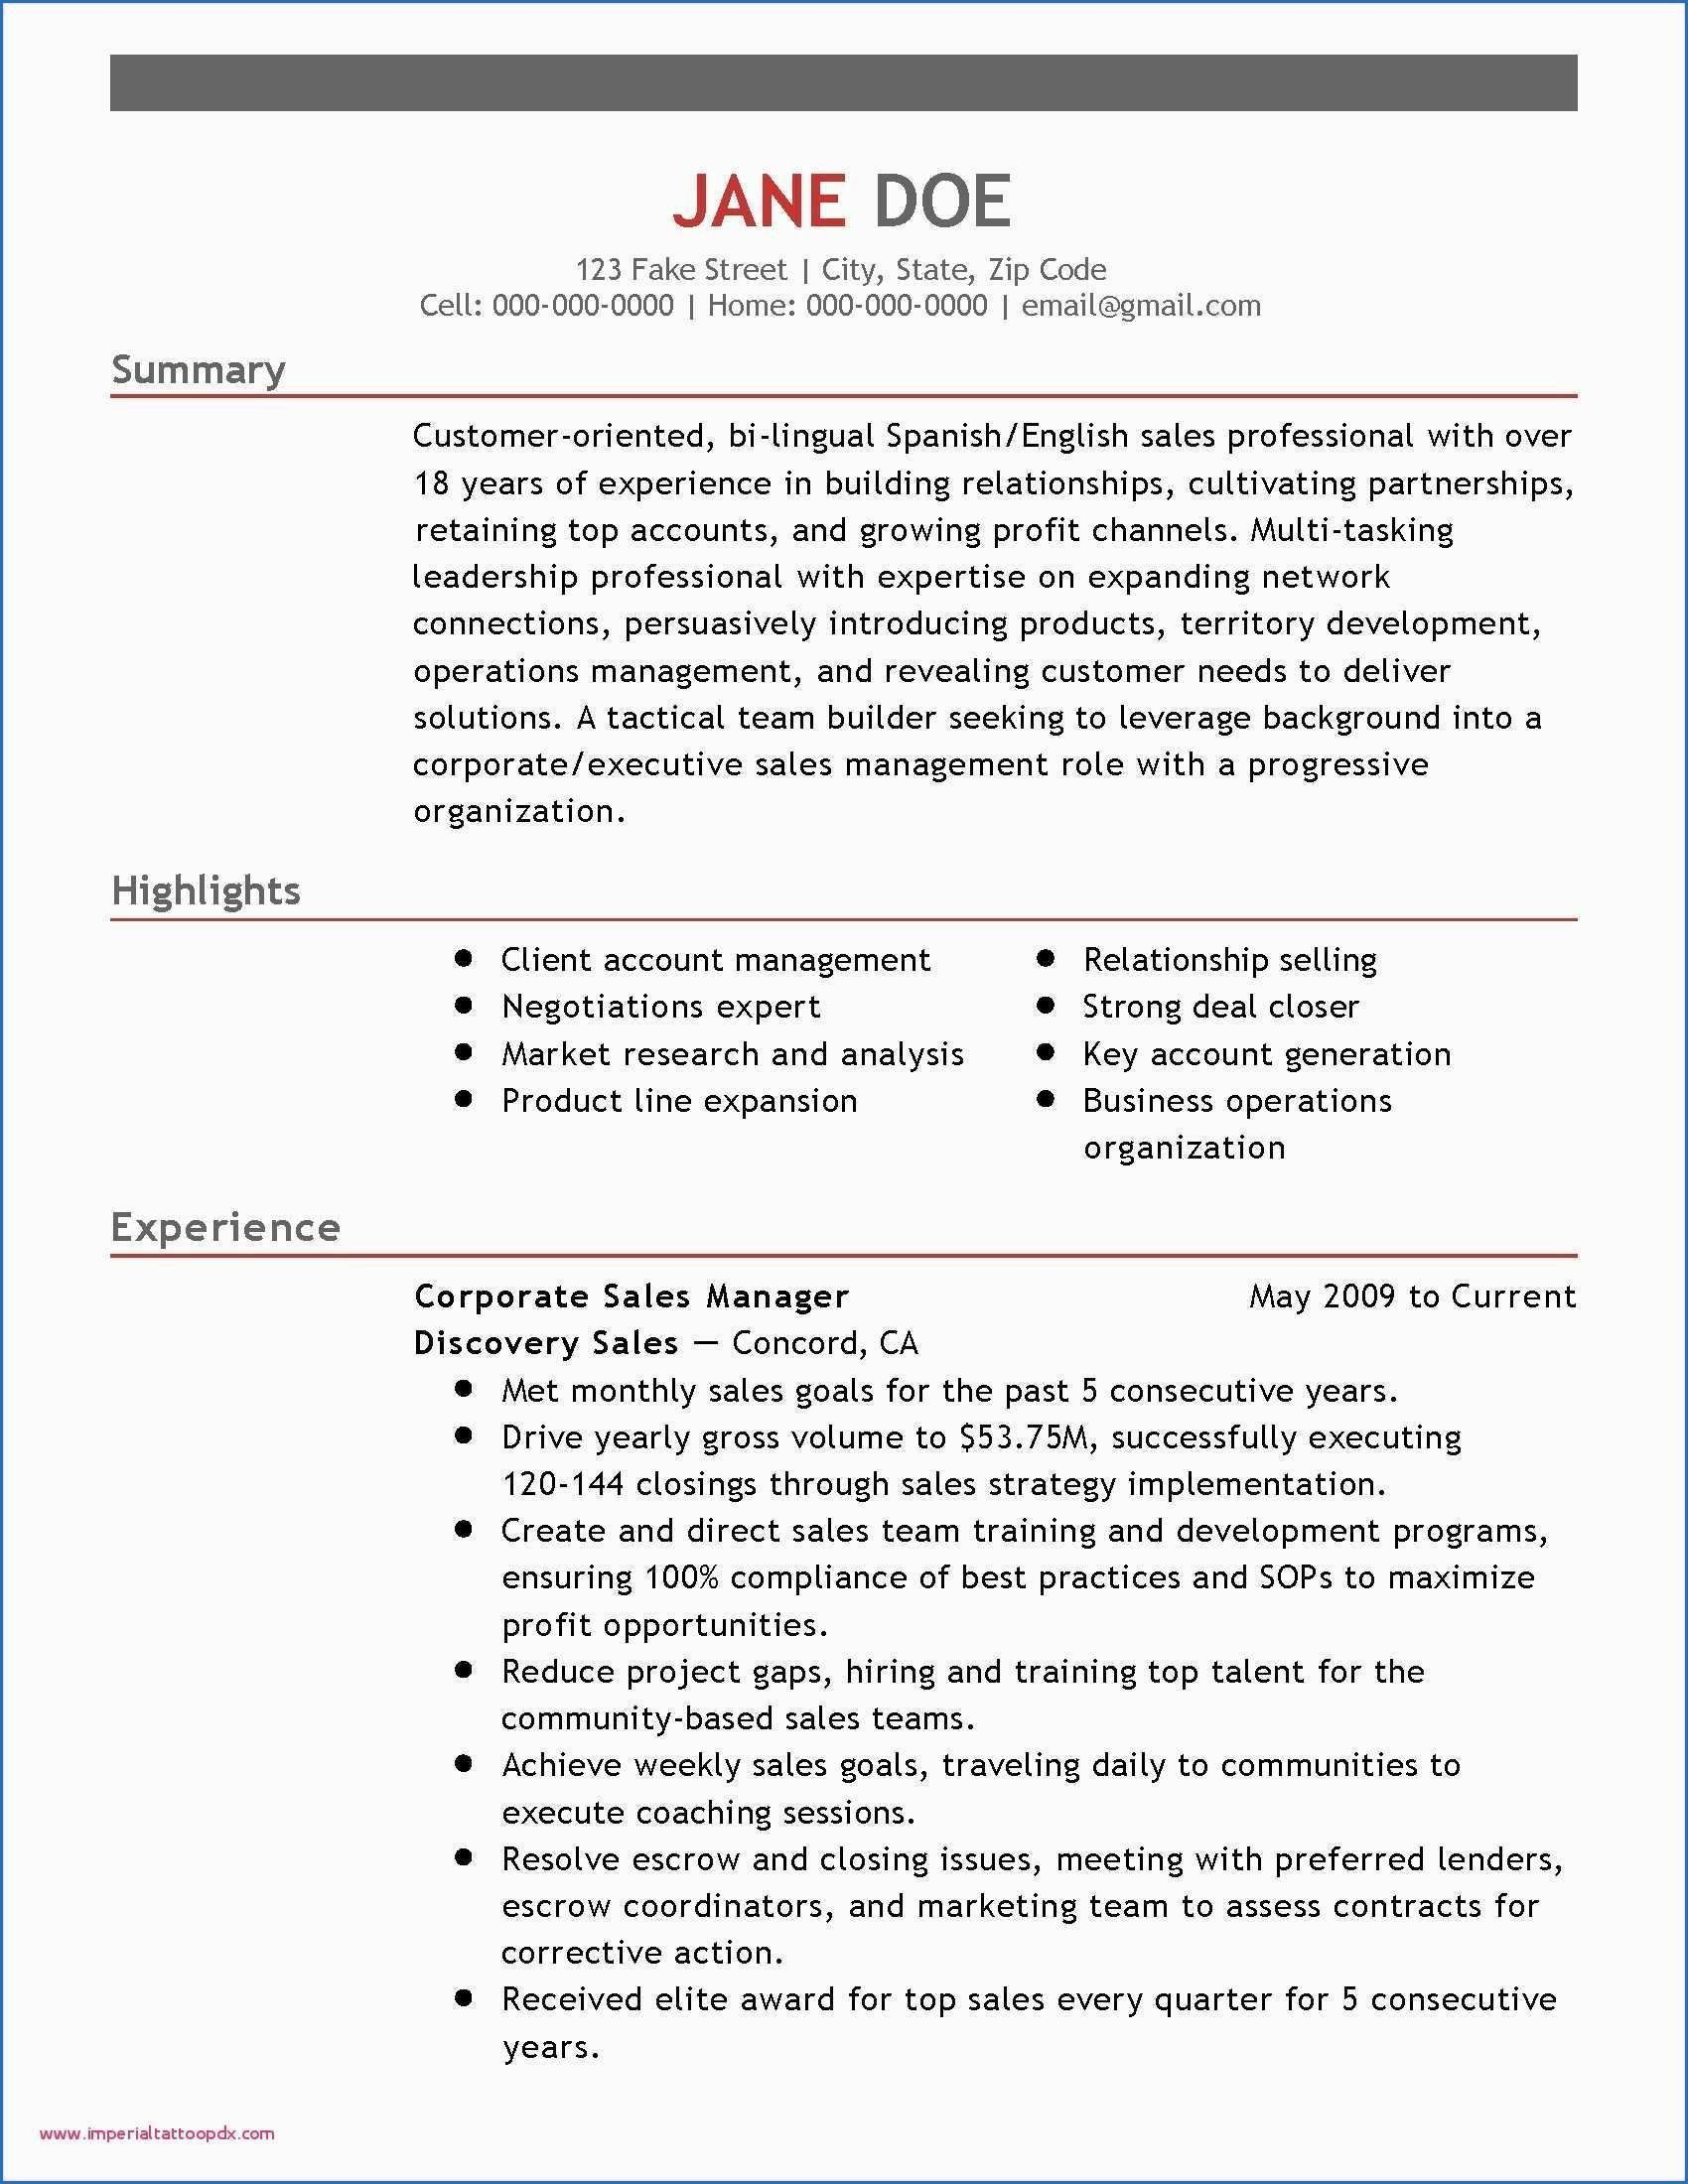 Nova Hunting The Elements Worksheet 15 Sample Resume Accounting Lecturer Resume Template Examples Teacher Resume Examples Resume